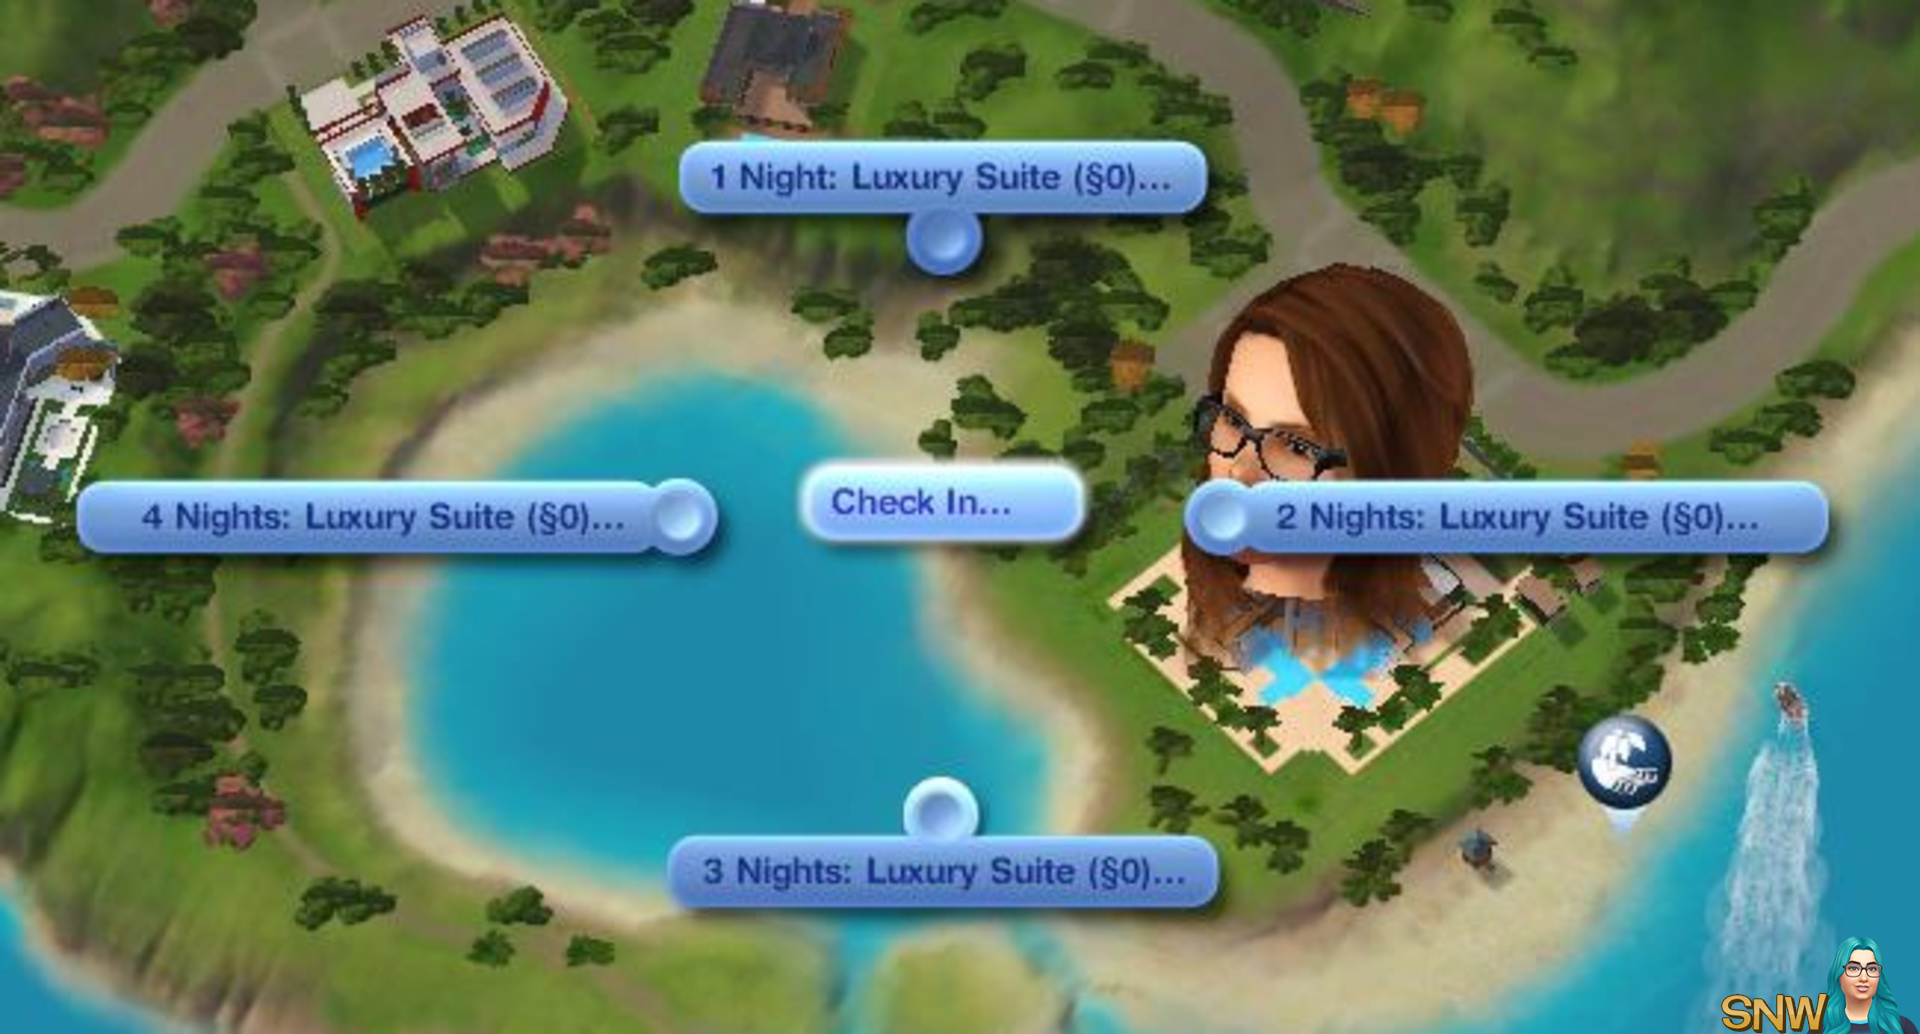 The sims 3 island paradise preview snw simsnetwork resorts have star ratings and the star rating will go up if you do better sims love to be entertained so you need to make sure there is enough fun and publicscrutiny Gallery